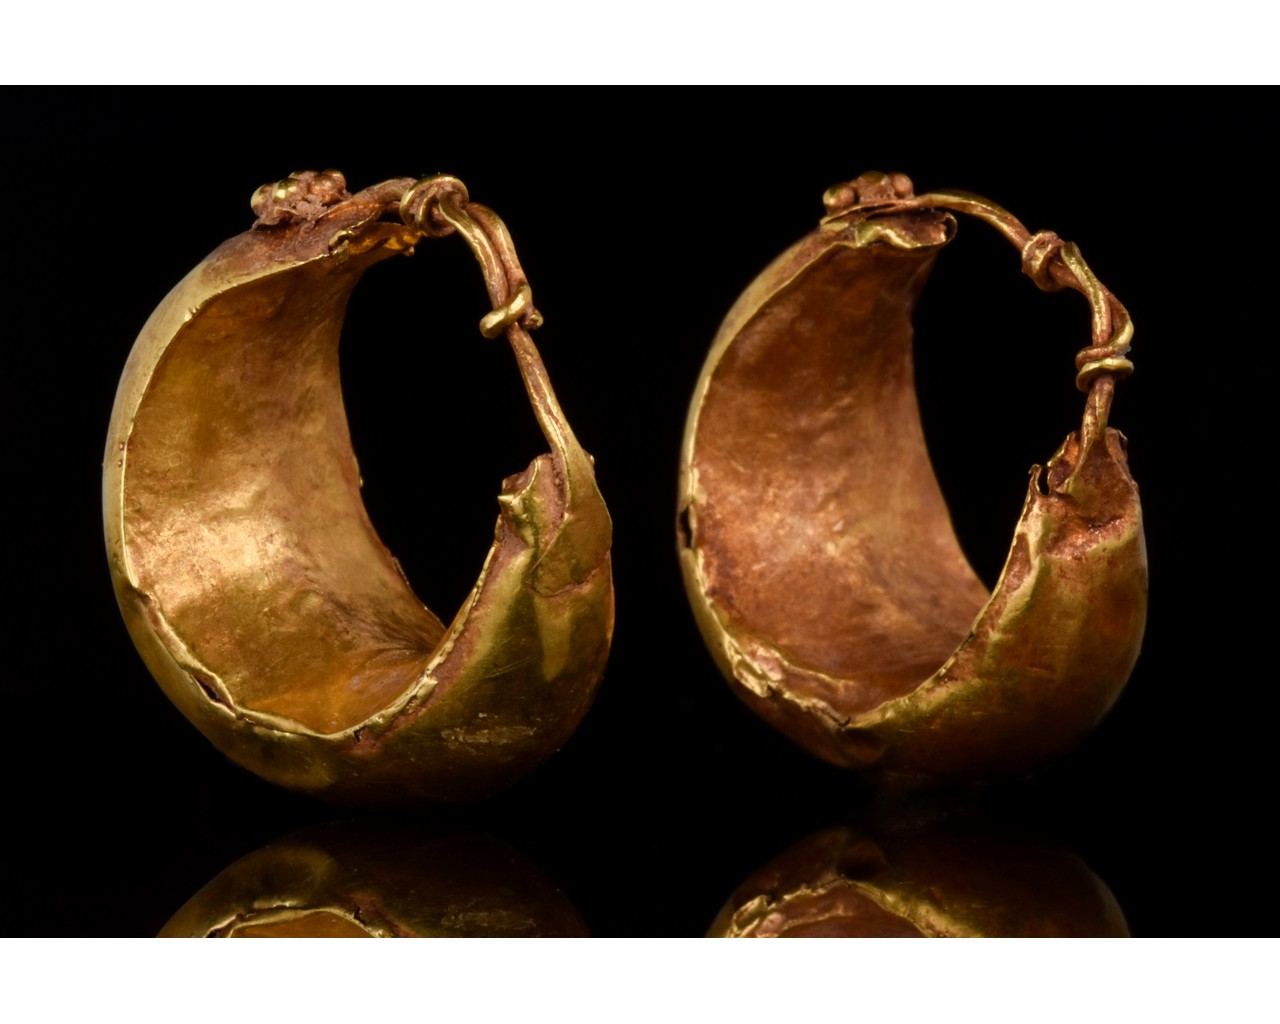 PAIR OF ROMAN GOLD BOAT SHAPED EARRINGS - FULL ANALYSIS - Image 3 of 11